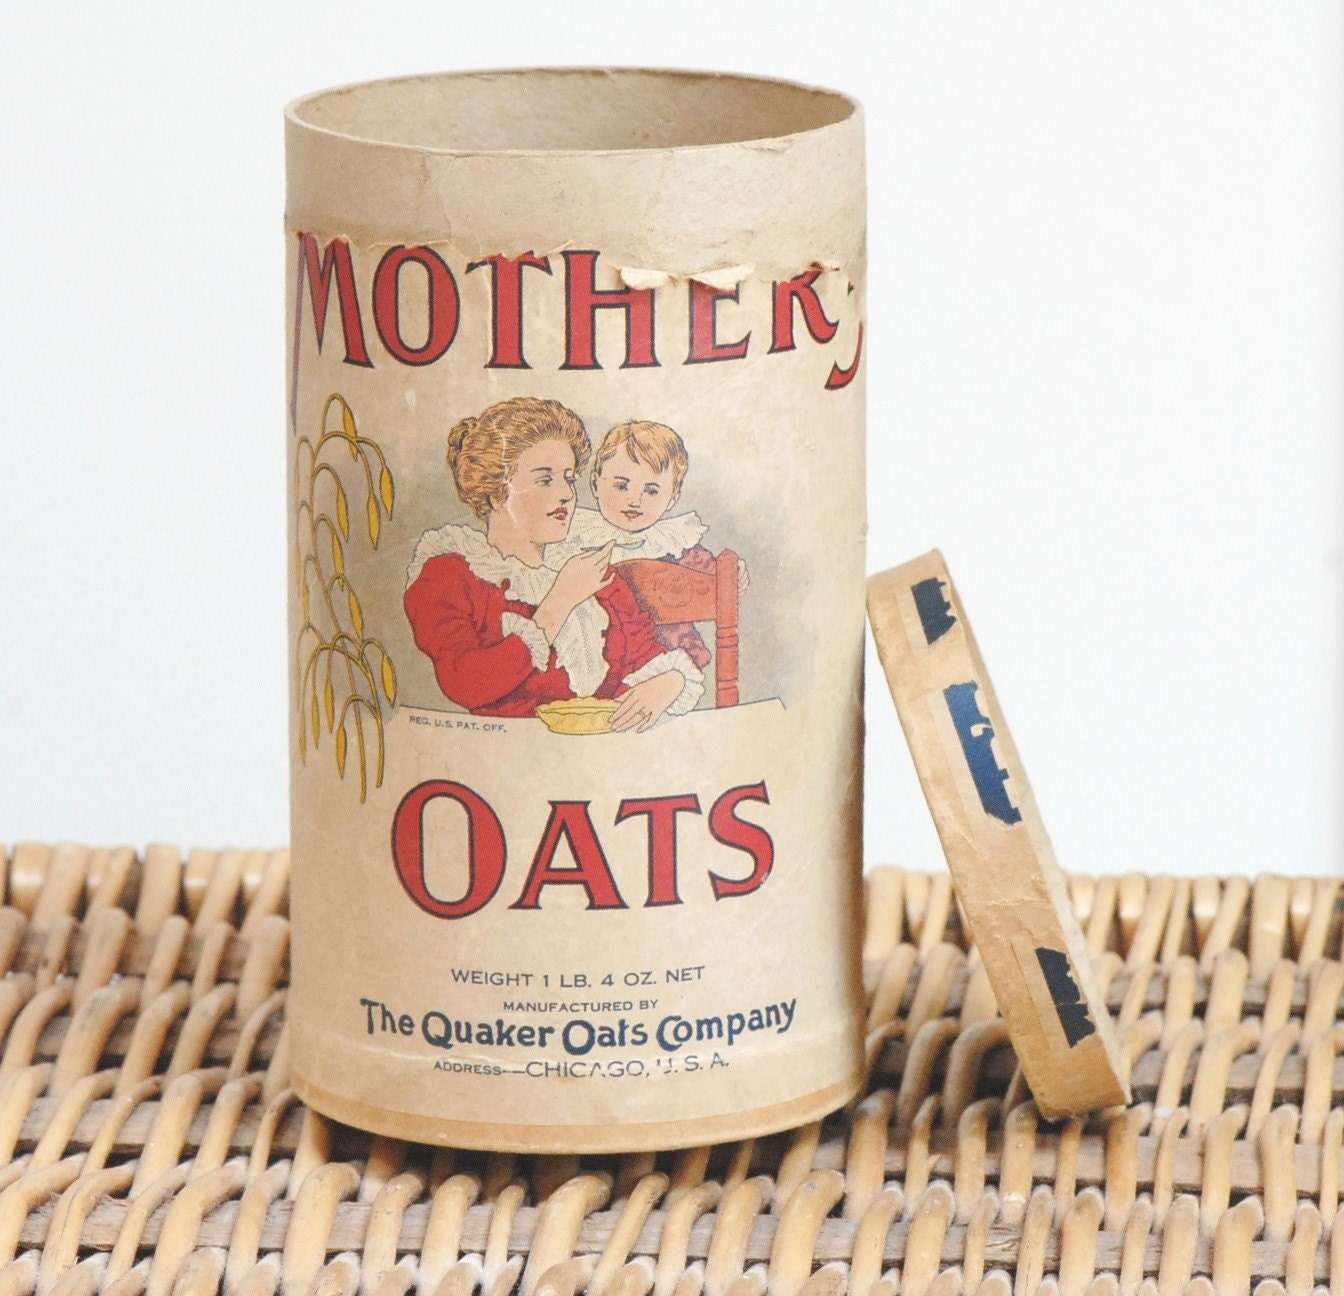 Vintage Mother's Oats Cardboard Box with Aunt Jemima's Old Plantation Pancakes Advertisement - Early 1900s